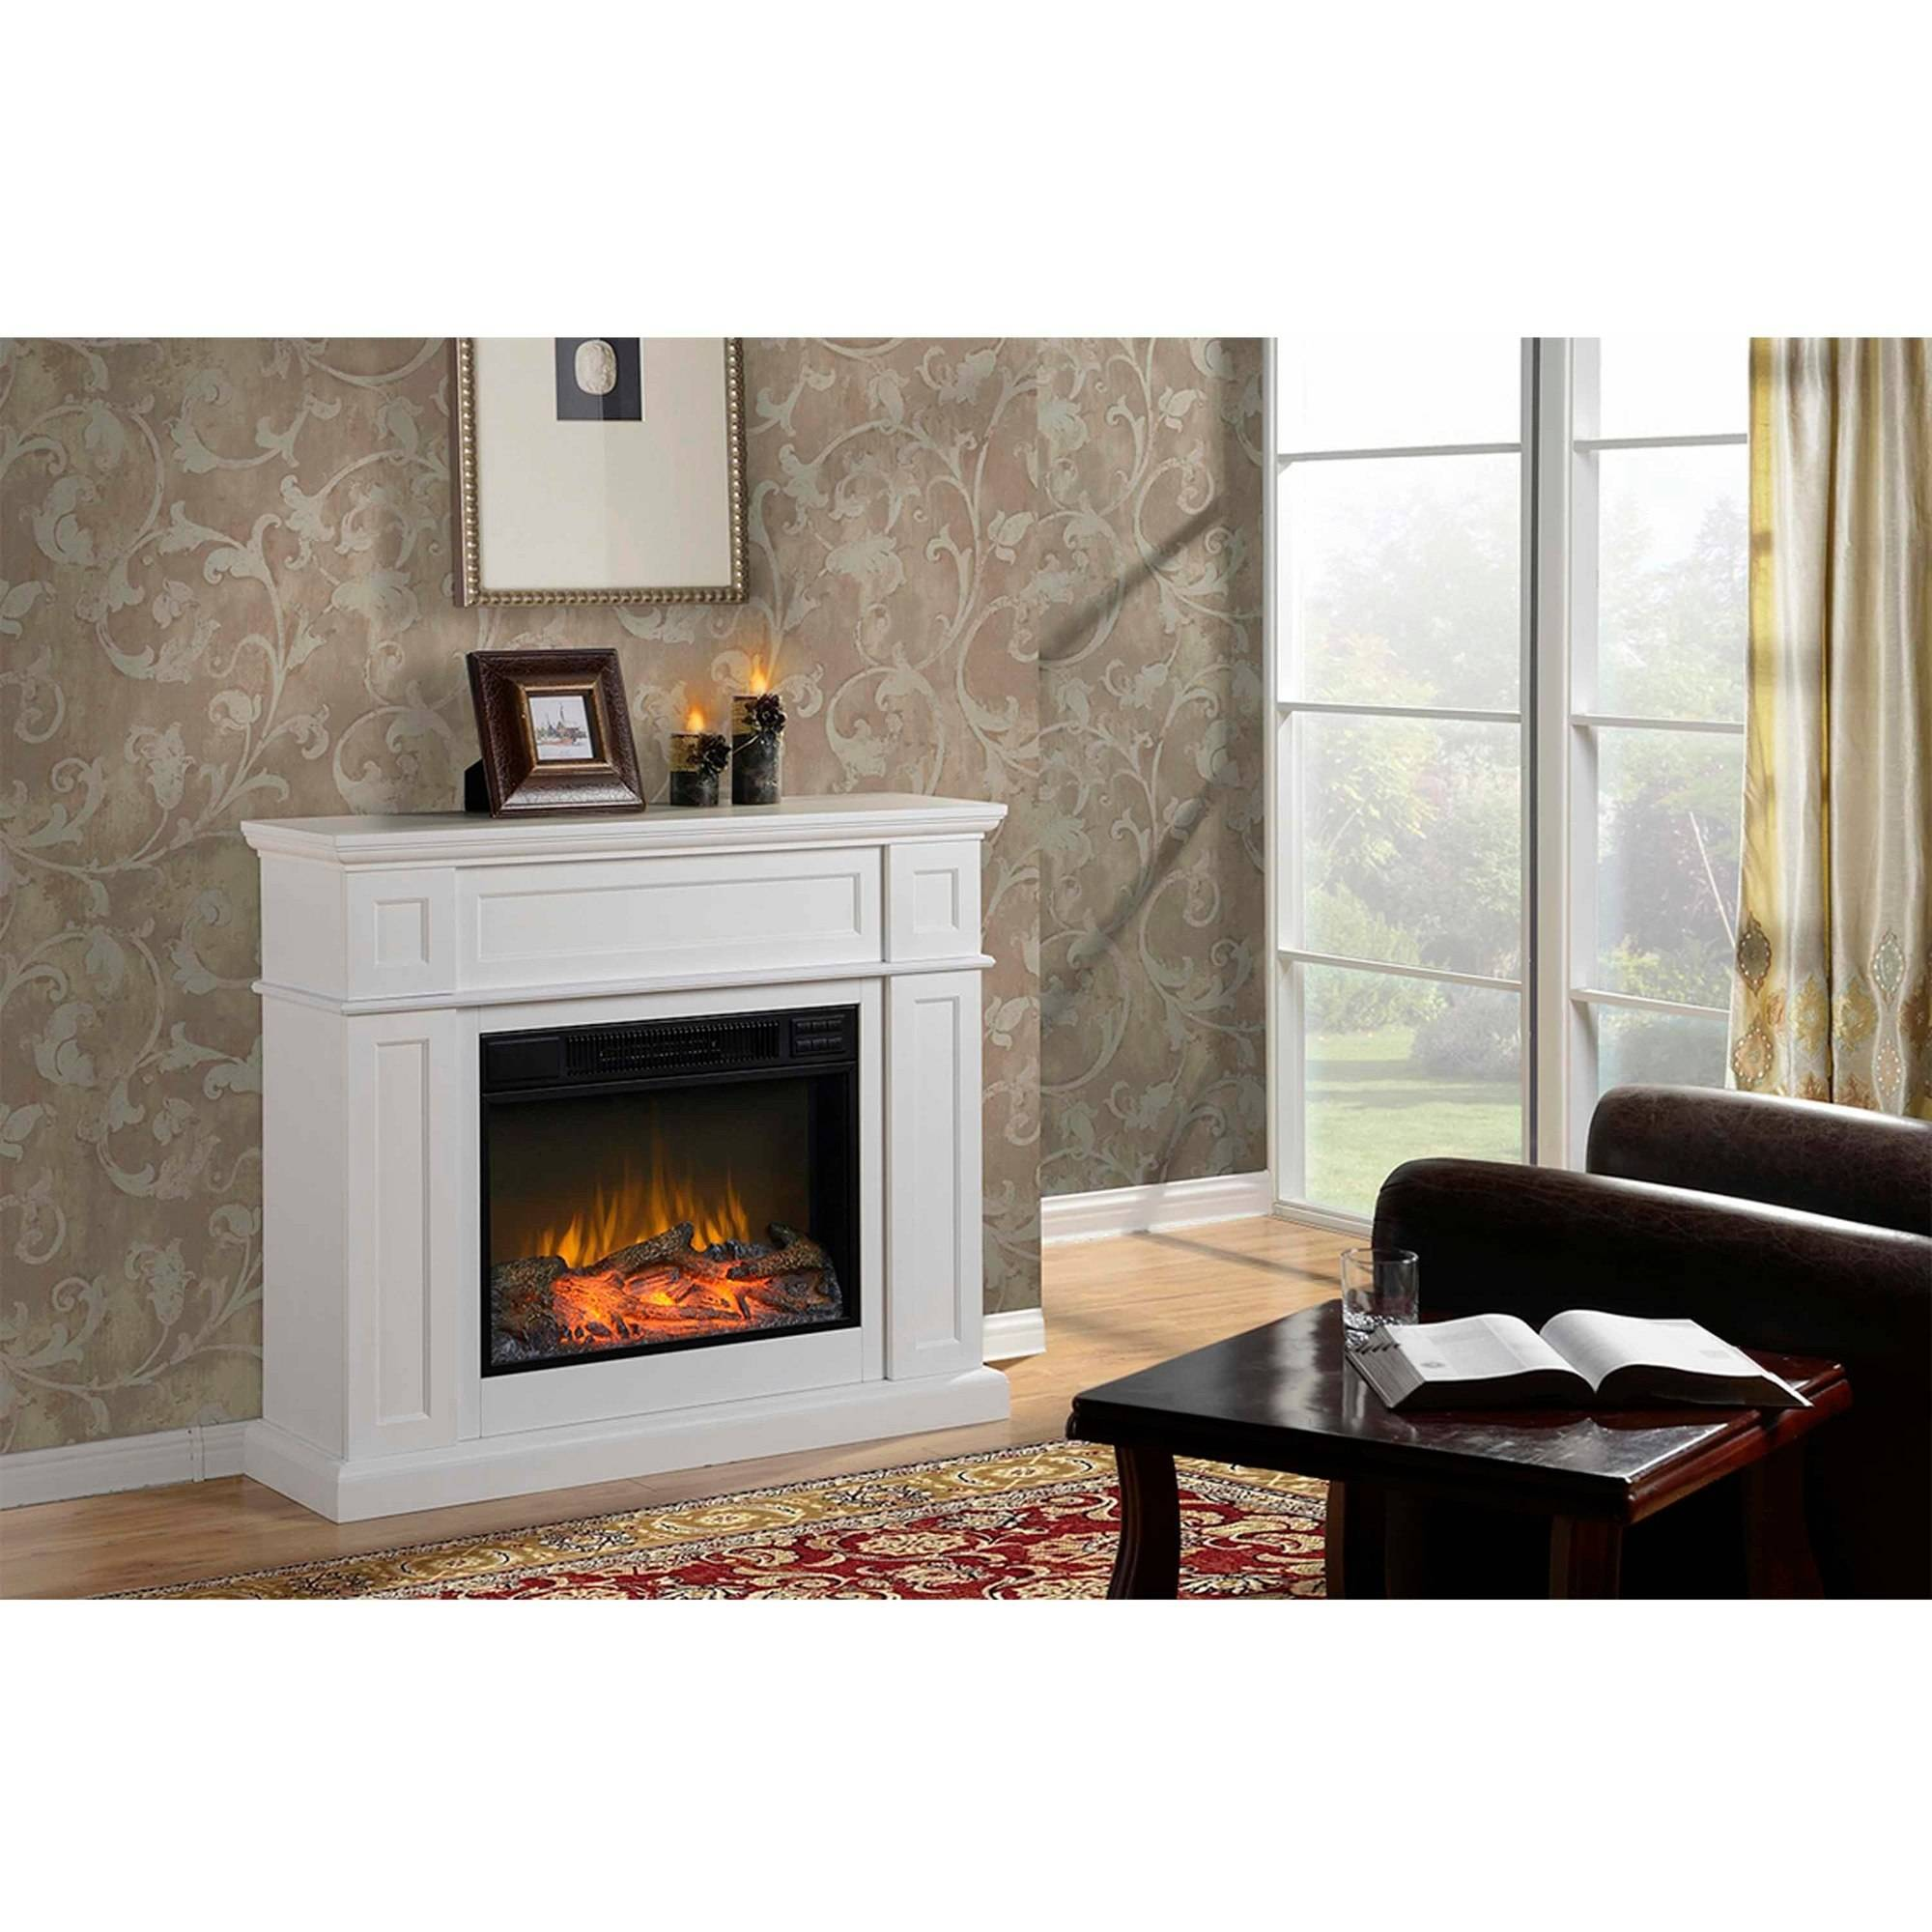 "Flamelux 41"" Wide Electric Fireplace Mantel, White Finish"